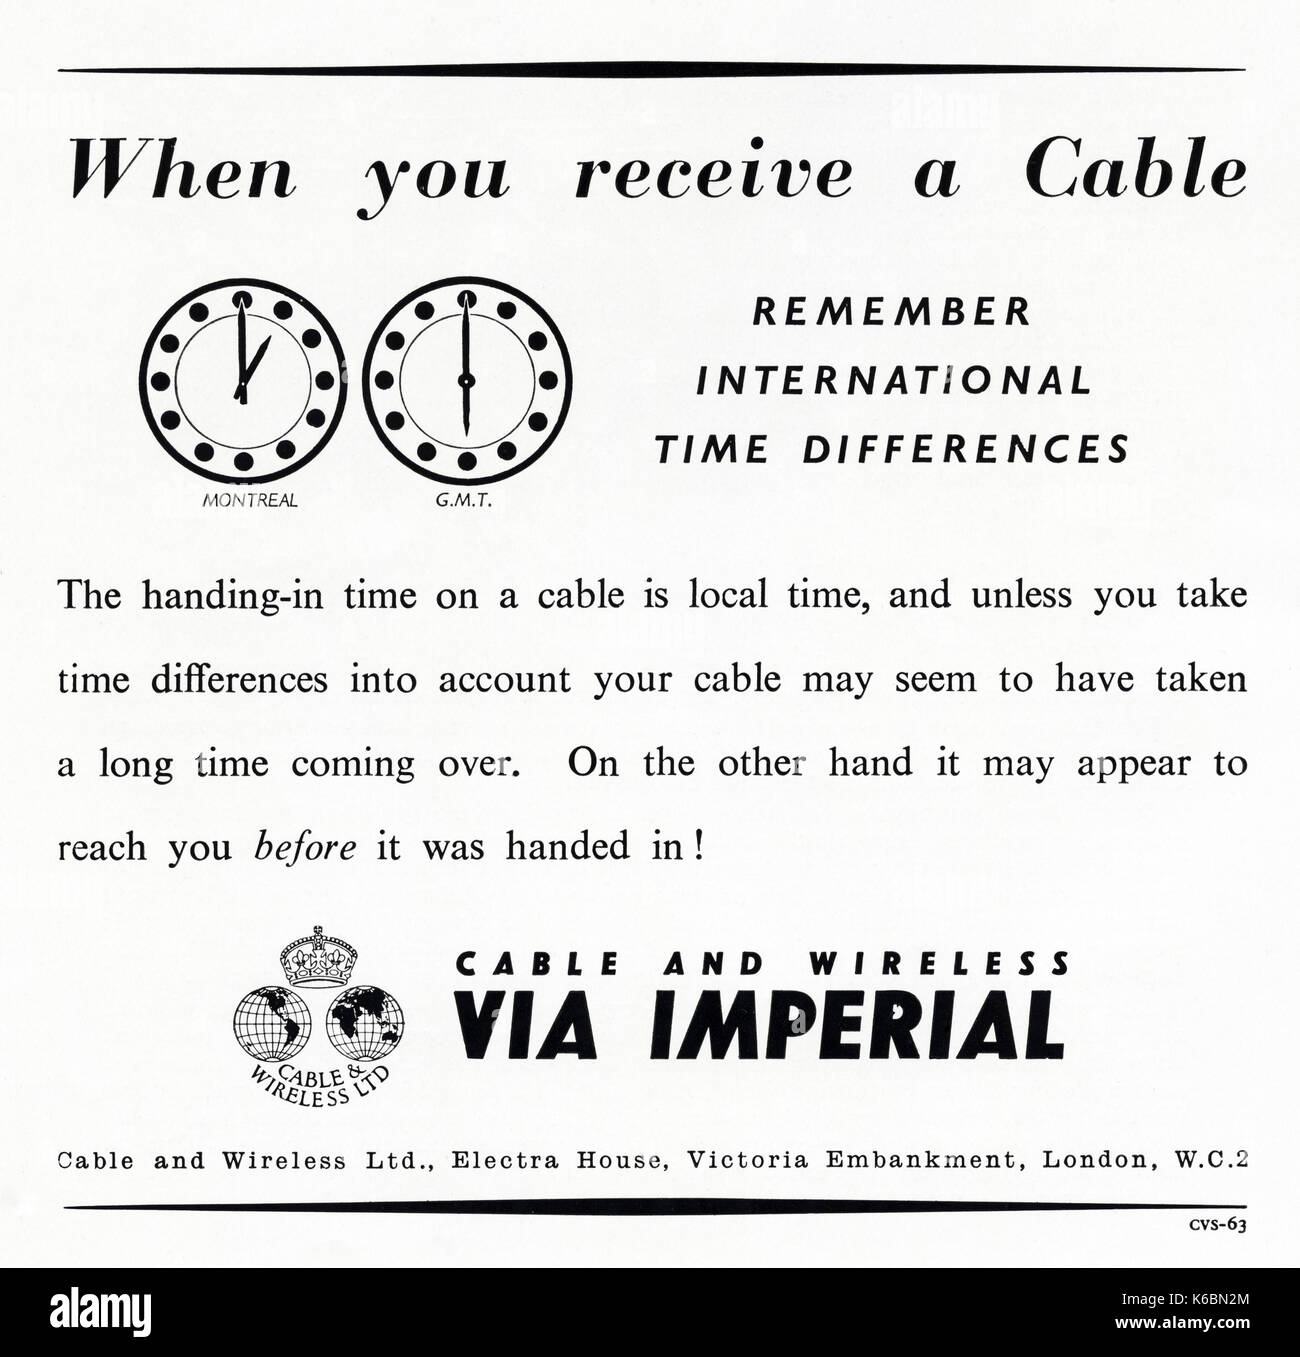 1940s old vintage original advert advertising Cable and Wireless Limited in magazine circa 1947 when supplies were still restricted under post-war rationing - Stock Image